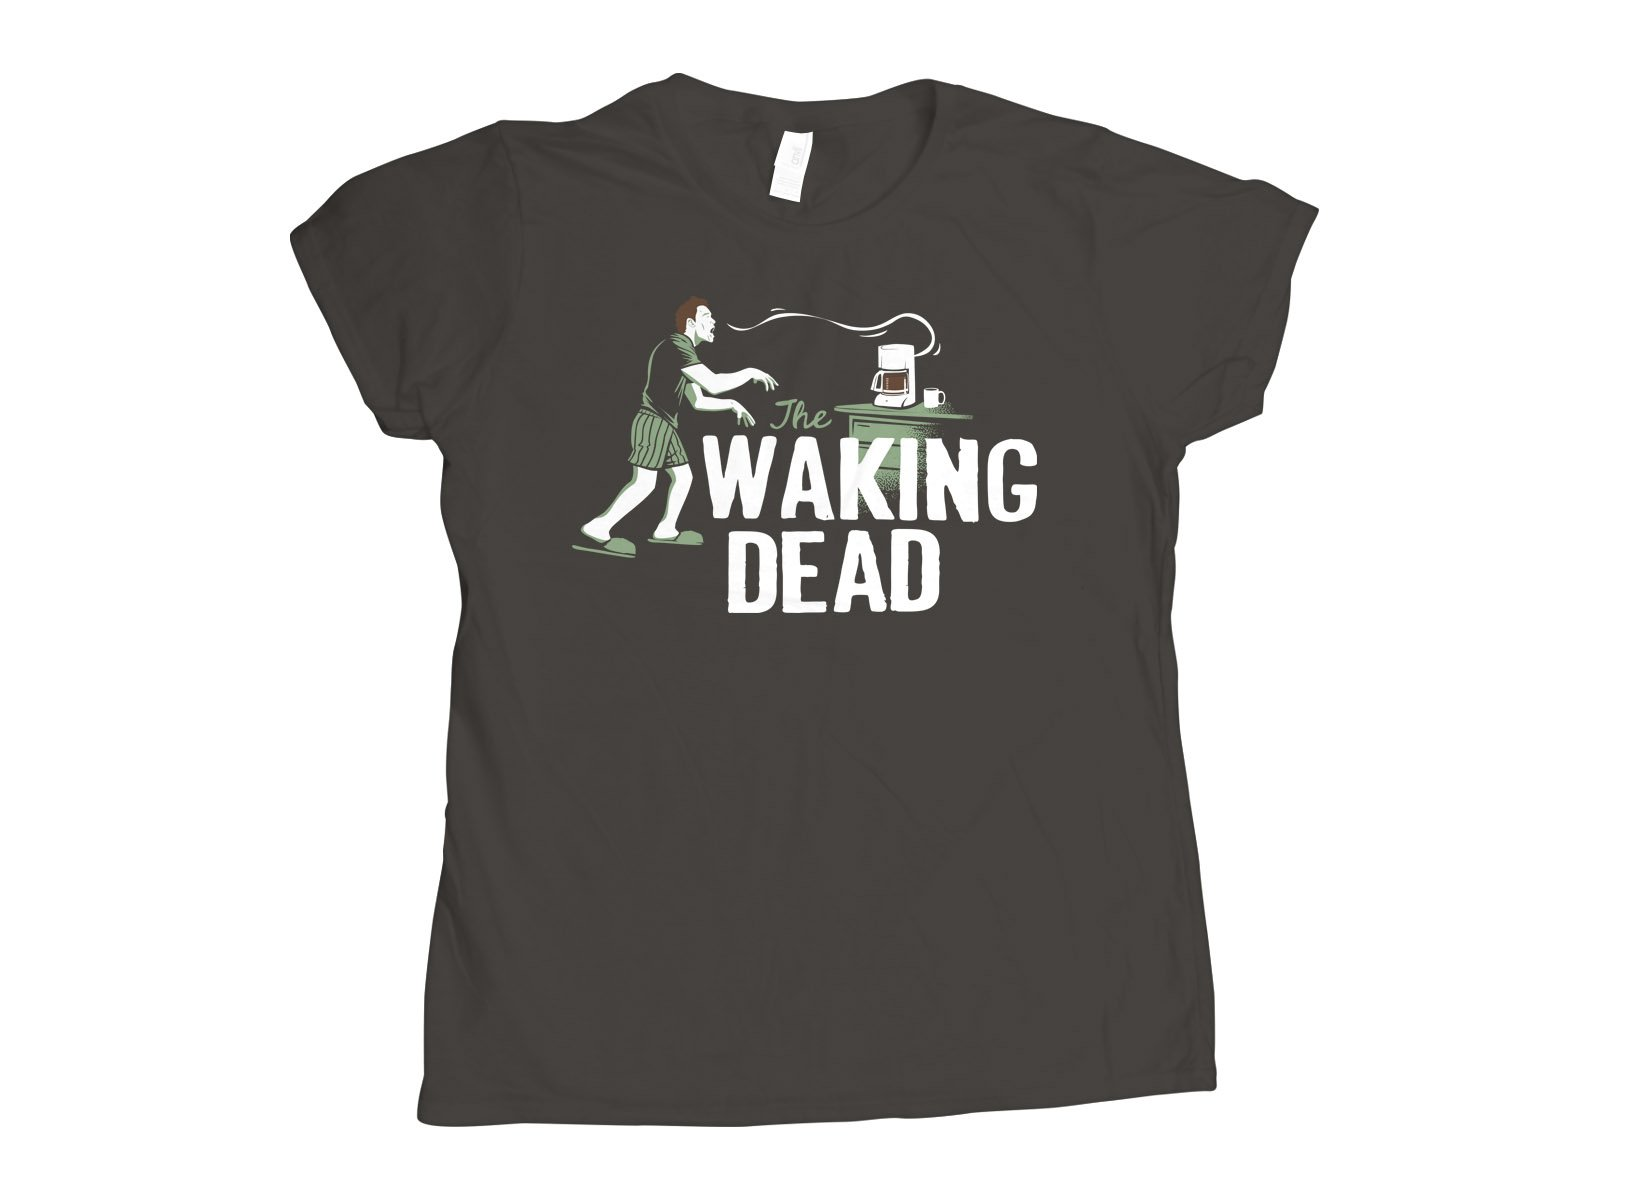 The Waking Dead on Womens T-Shirt